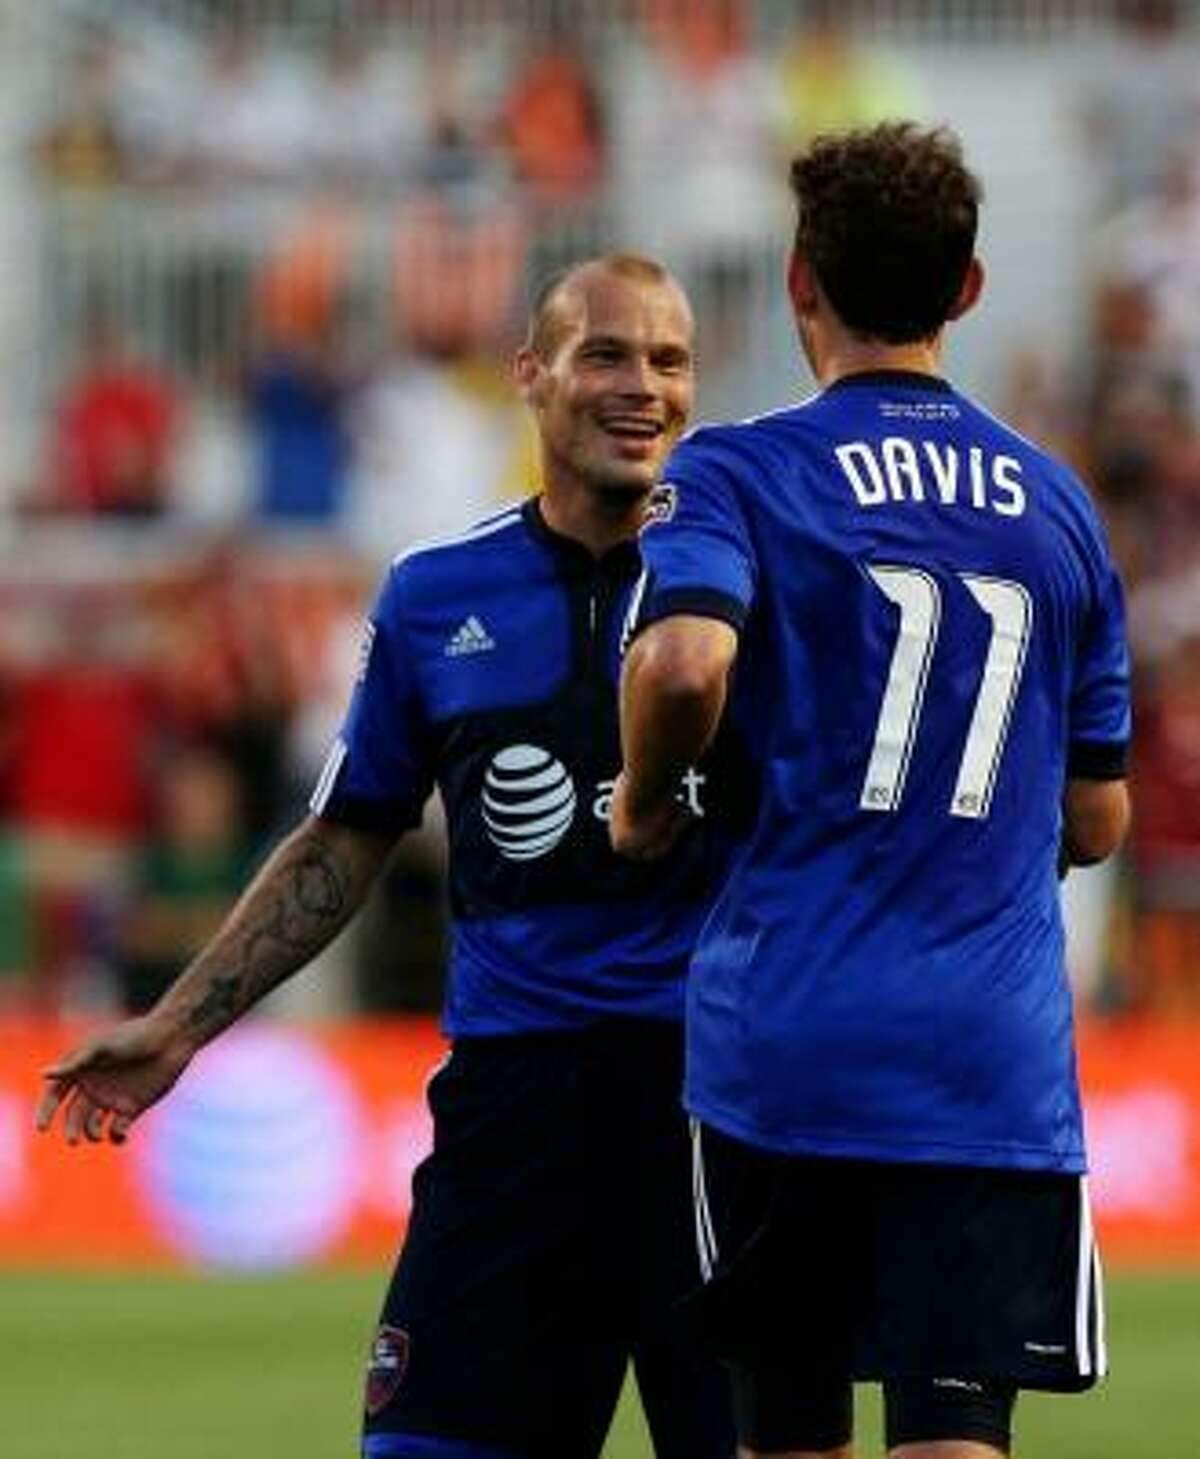 Midfielder Freddie Ljungberg celebrates with Dynamo midfielder Brad Davis after Davis scored the game-tying goal in the first half.